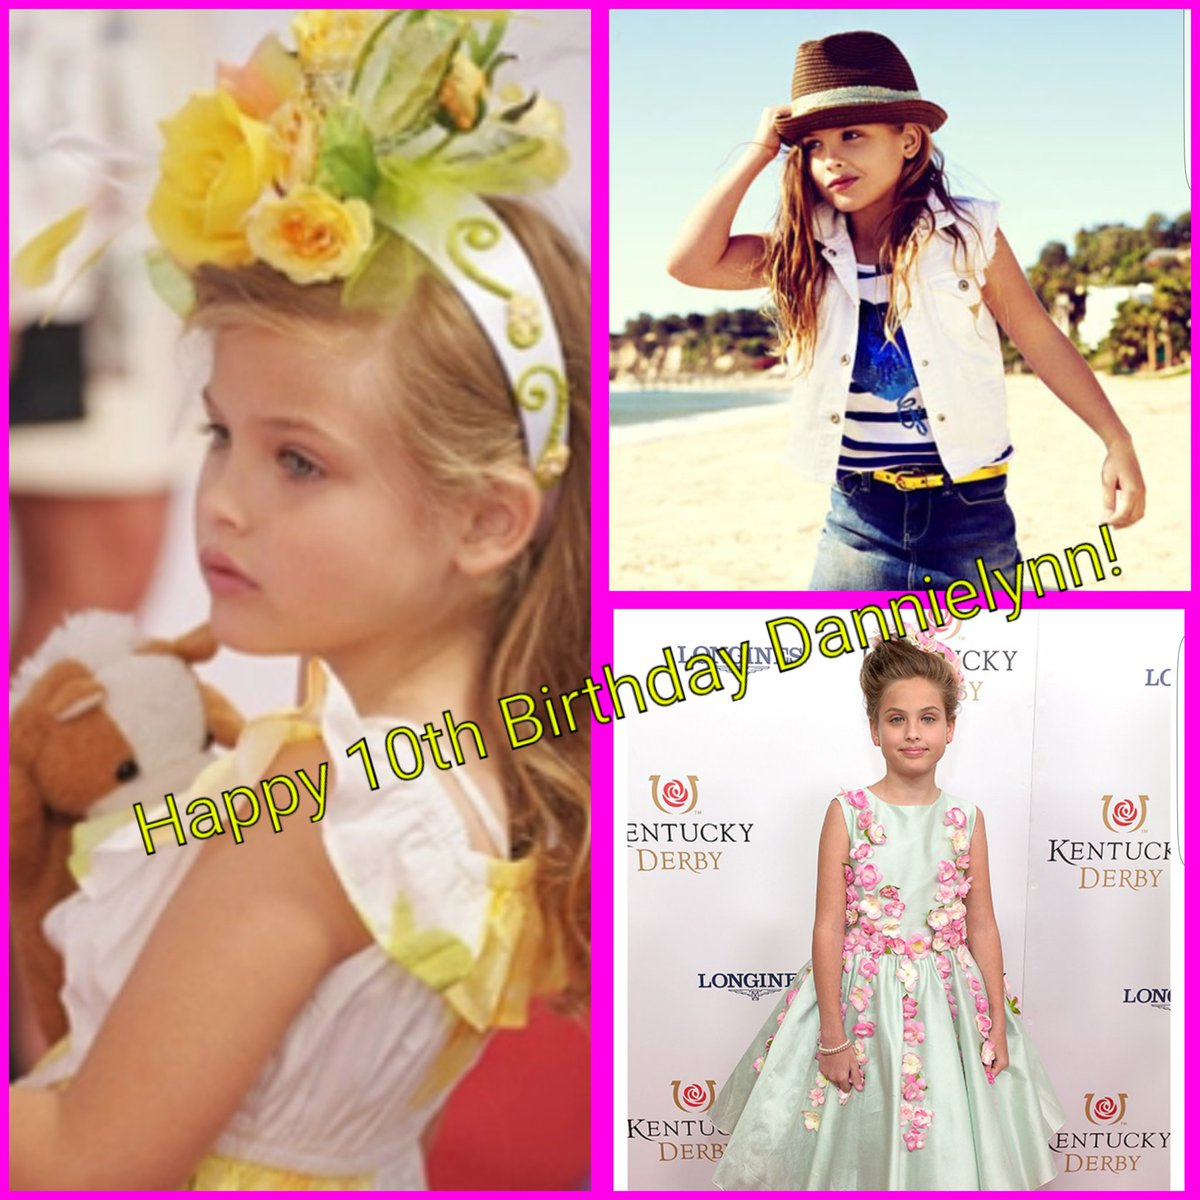 Happy 10th Birthday Dannielynn!  #DannielynnIs10